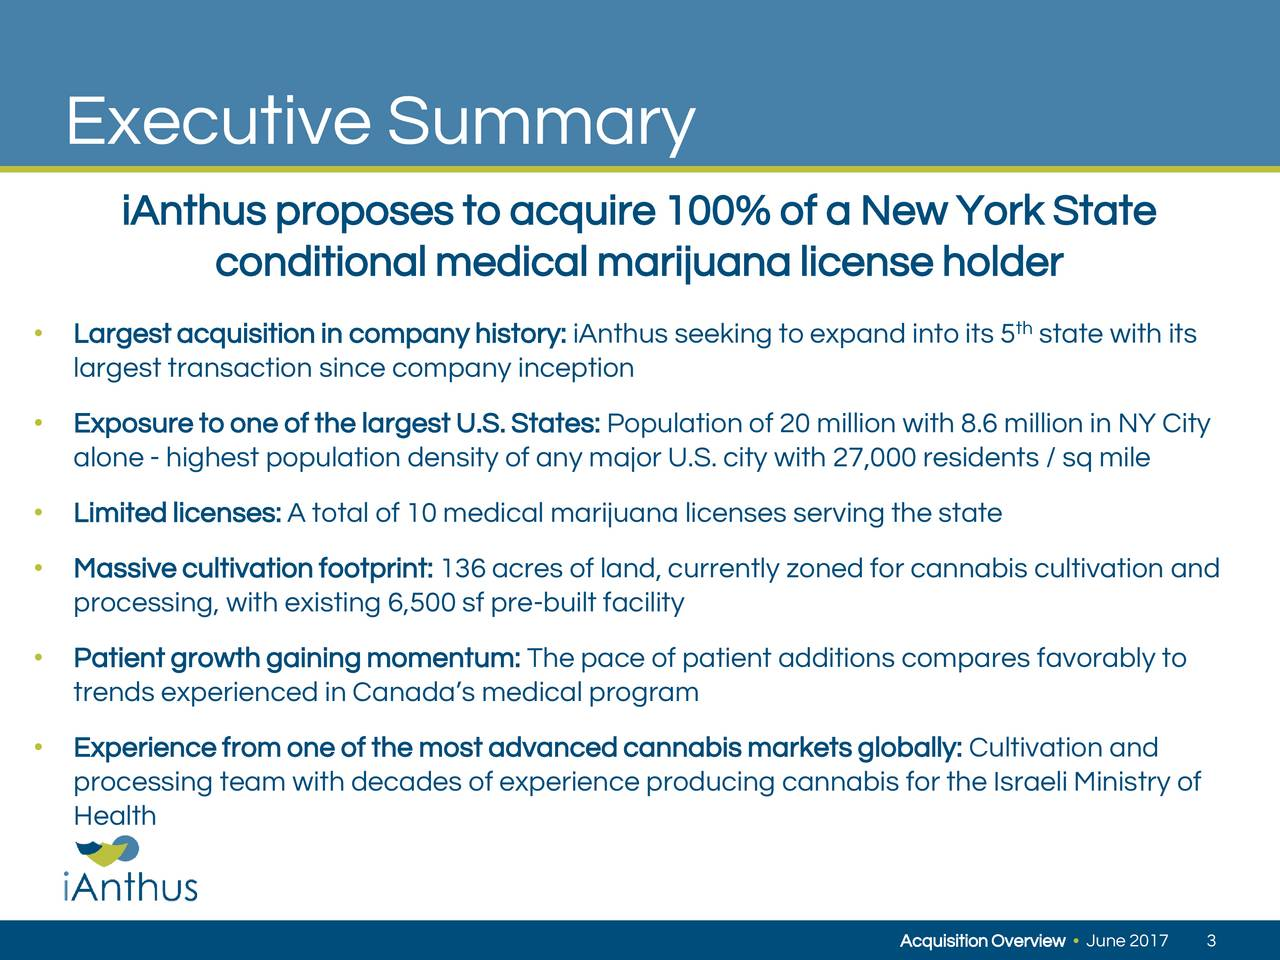 iAnthus proposes to acquire100% of a New York State conditionalmedical marijuanalicenseholder th Largestacquisition in companyhistory: iAnthus seeking to expand into its 5 state with its largest transaction since company inception Exposure to one of the largest U.S. States: Population of 20 million with 8.6 million in NY City alone - highest population density of any major U.S. city with 27,000 residents / sq mile Limited licenses: A total of 10 medical marijuana licenses serving the state Massivecultivation footprint: 136 acres of land, currently zoned for cannabis cultivation and processing, with existing 6,500 sf pre-built facility Patient growth gainingmomentum: The pace of patient additions compares favorably to trends experienced in Canadas medical program Experiencefrom one of the most advancedcannabis marketsglobally: Cultivation and processing team with decades of experience producing cannabis for the Israeli Ministry of Health